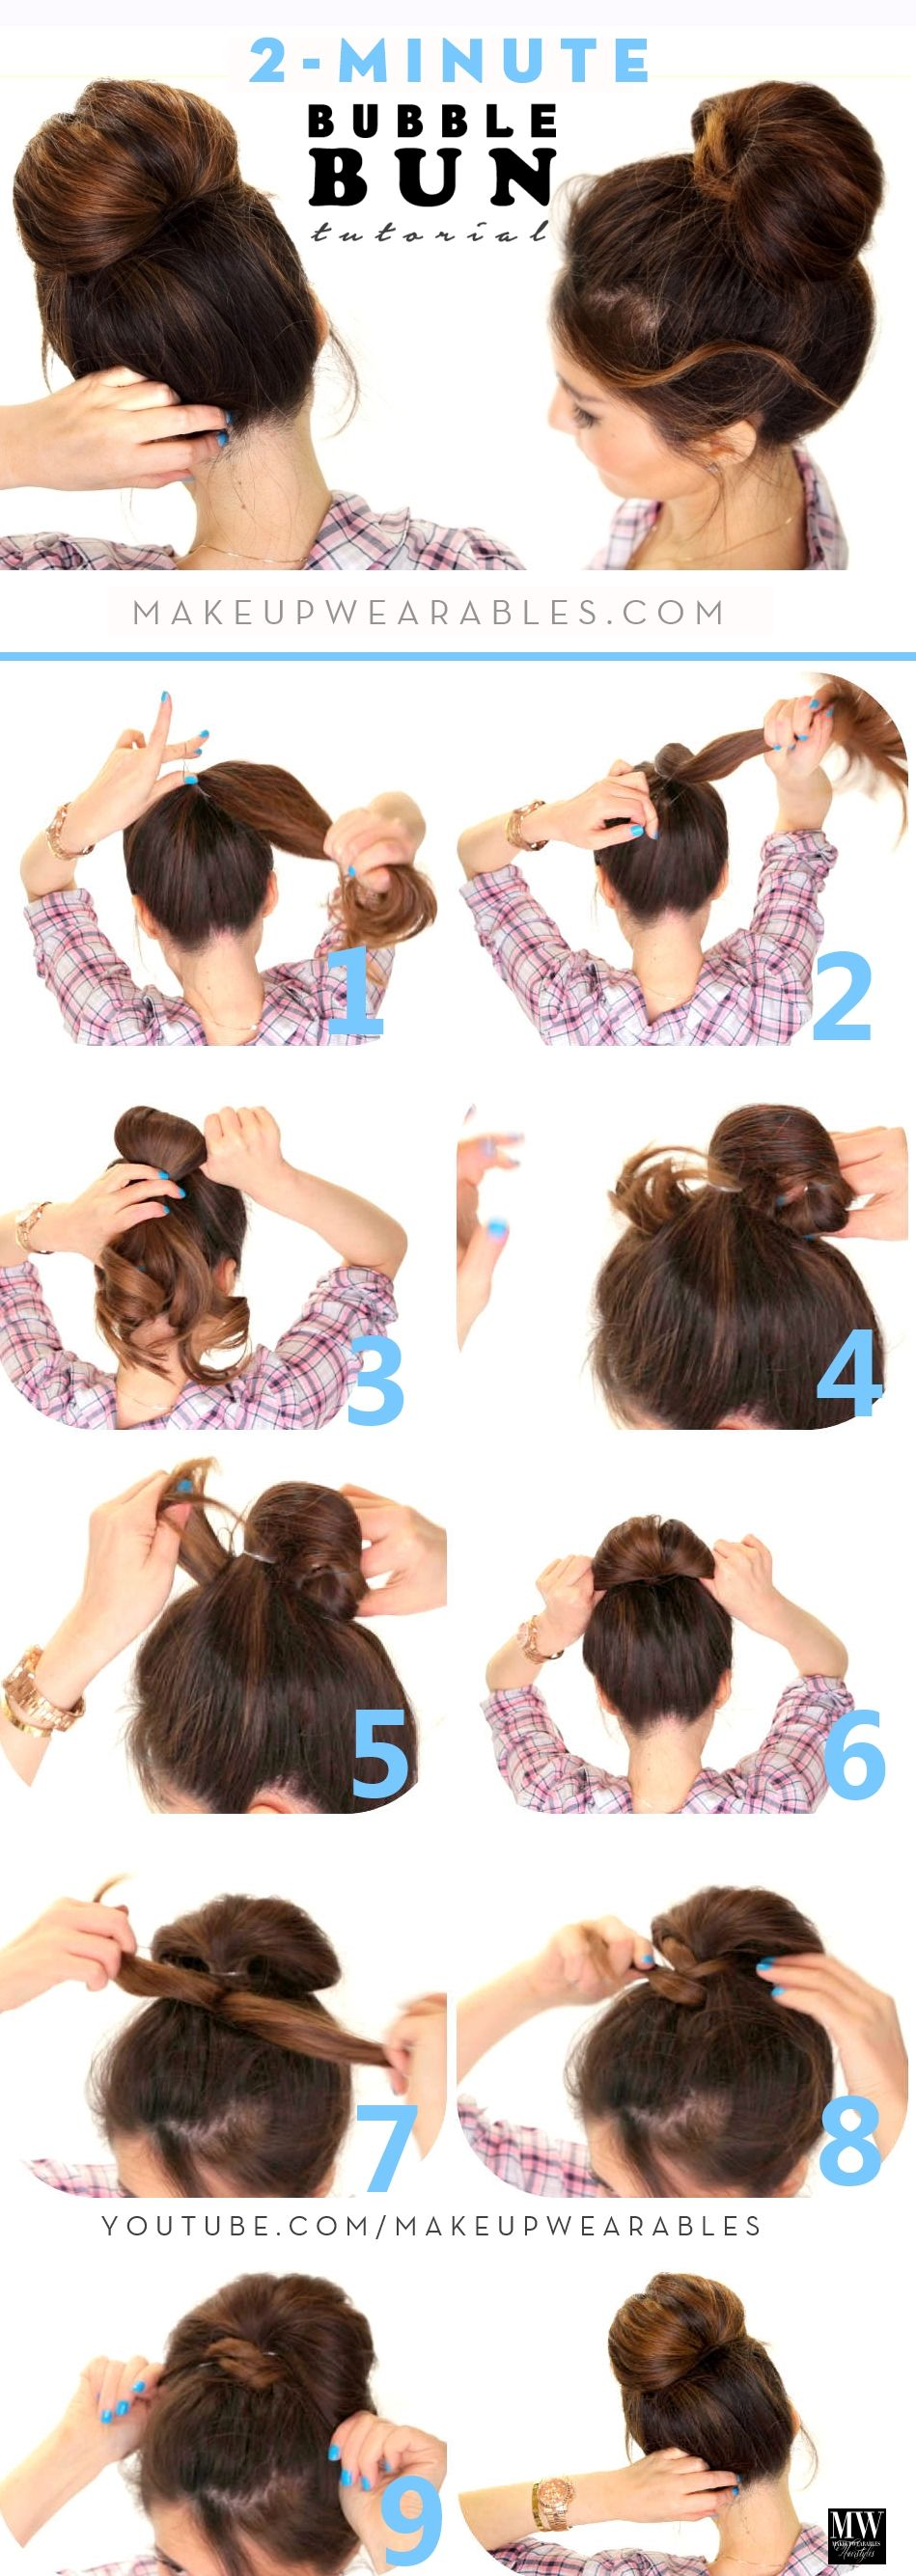 Easy 2 Minute Hairstyles For Long Hair Hairstyles Hairstylesforlonghair Minute Hair Bun Tutorial Hair Styles Long Hair Styles